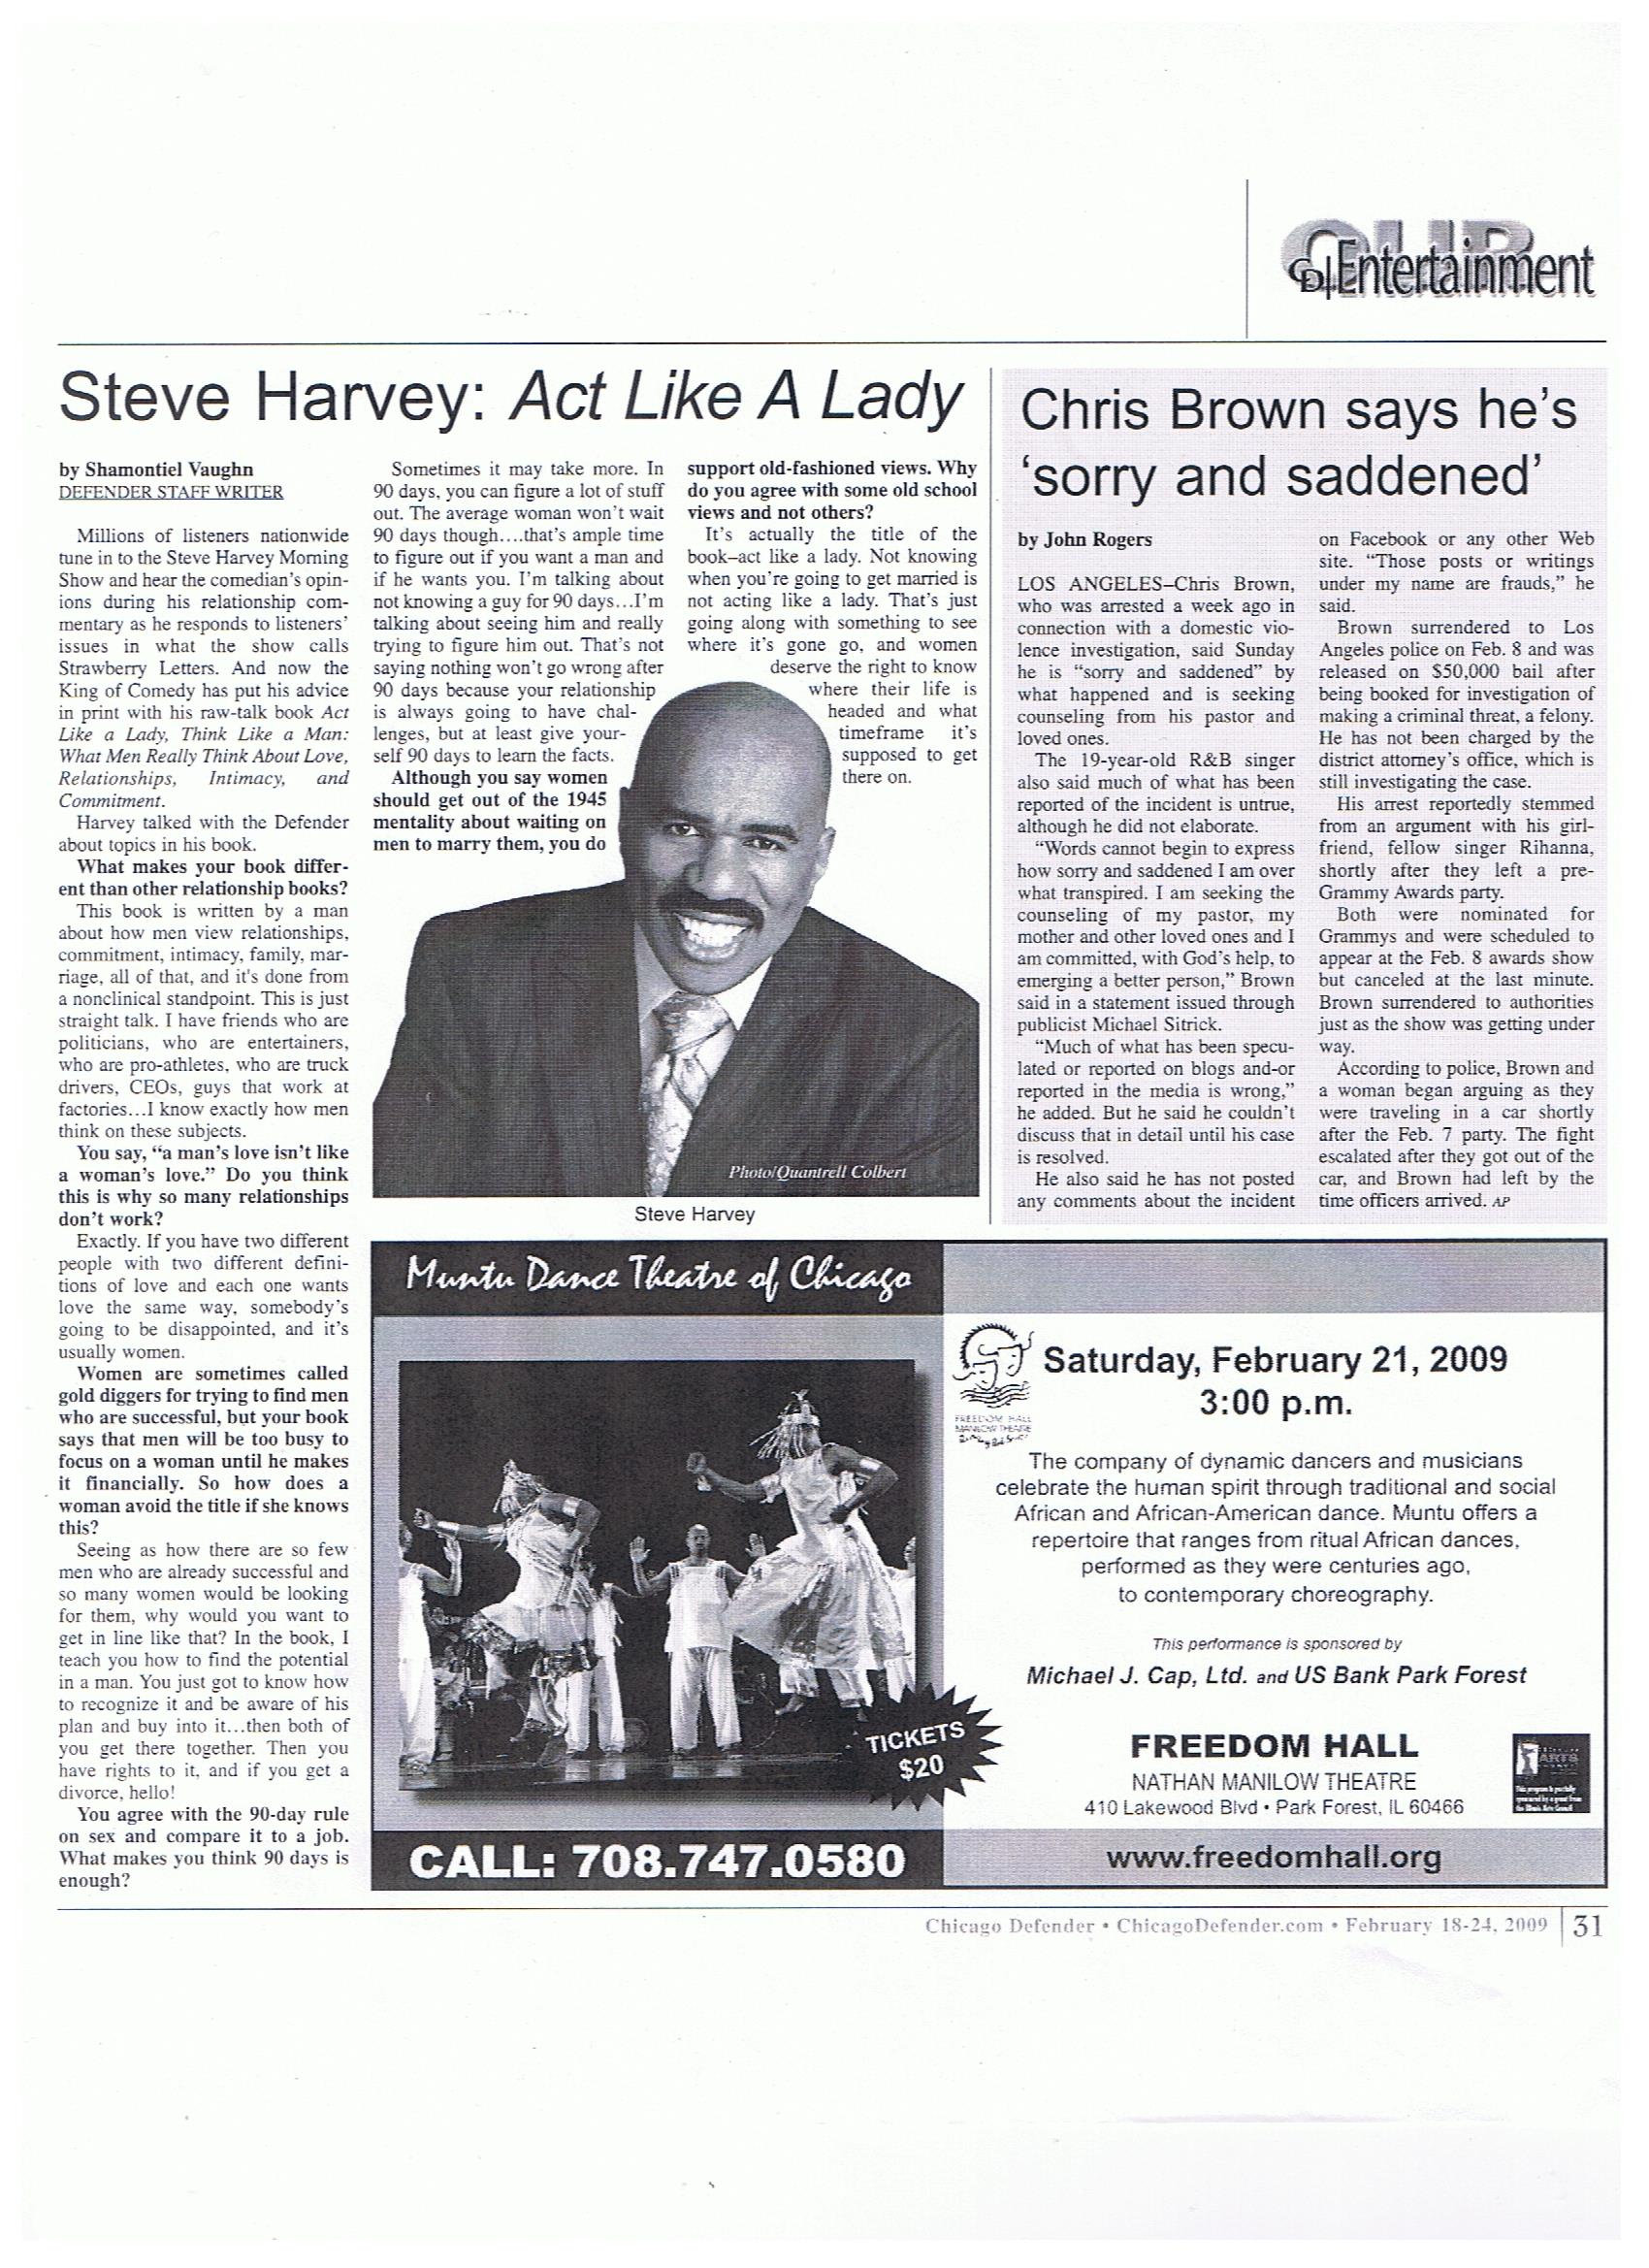 act like a lady think like a man dating rules At your job, didn't you have the 90-day rule before benefits notes from the interview with steve harvey, author of act like a lady, think like a man.